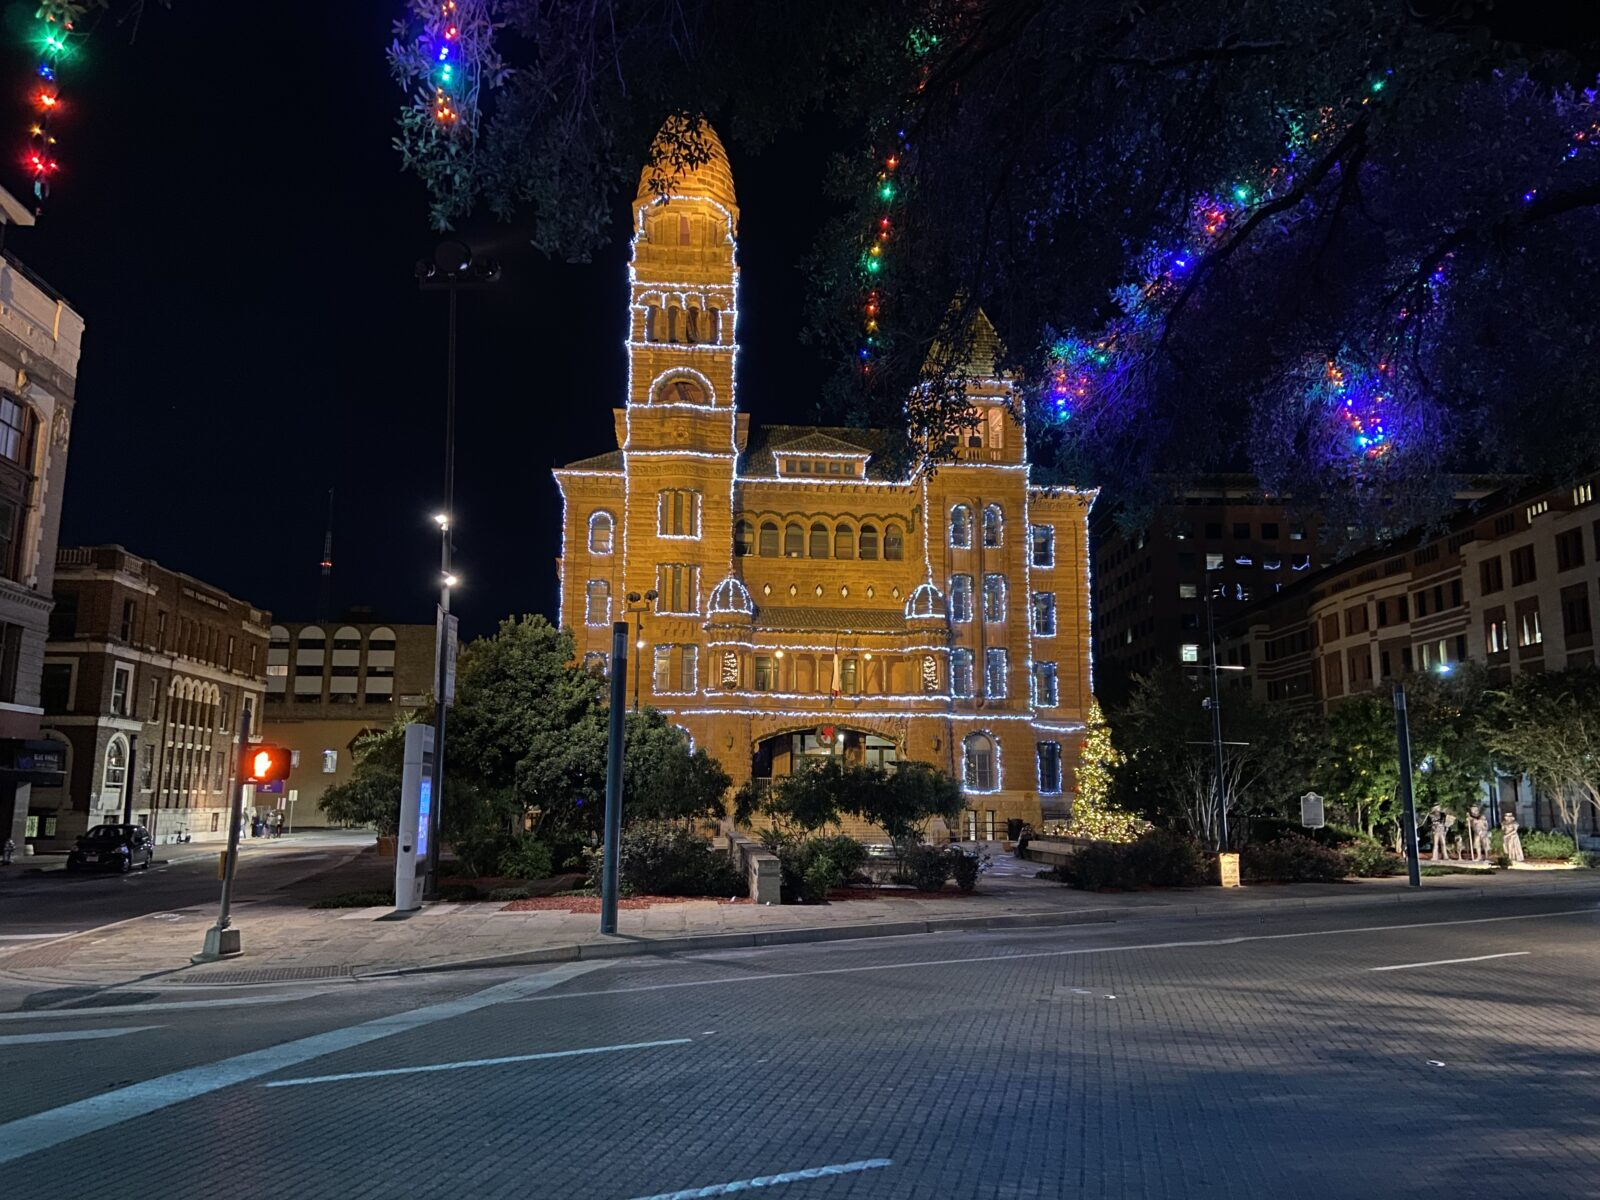 The Bexar County Courthouse is full of light before Christmas in San Antonio.